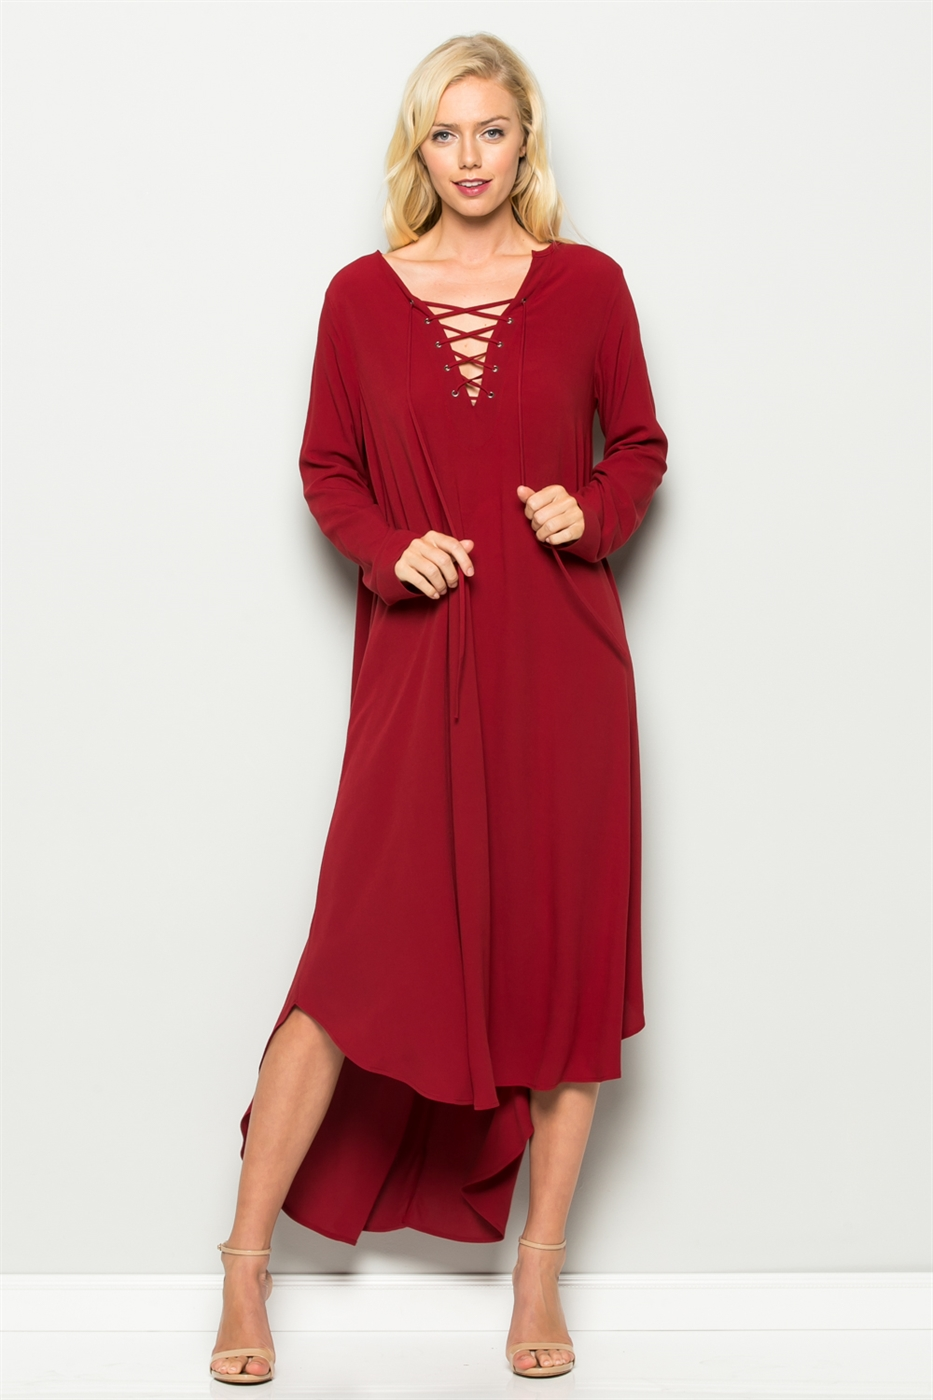 LACE UP FRONT DRESS - orangeshine.com